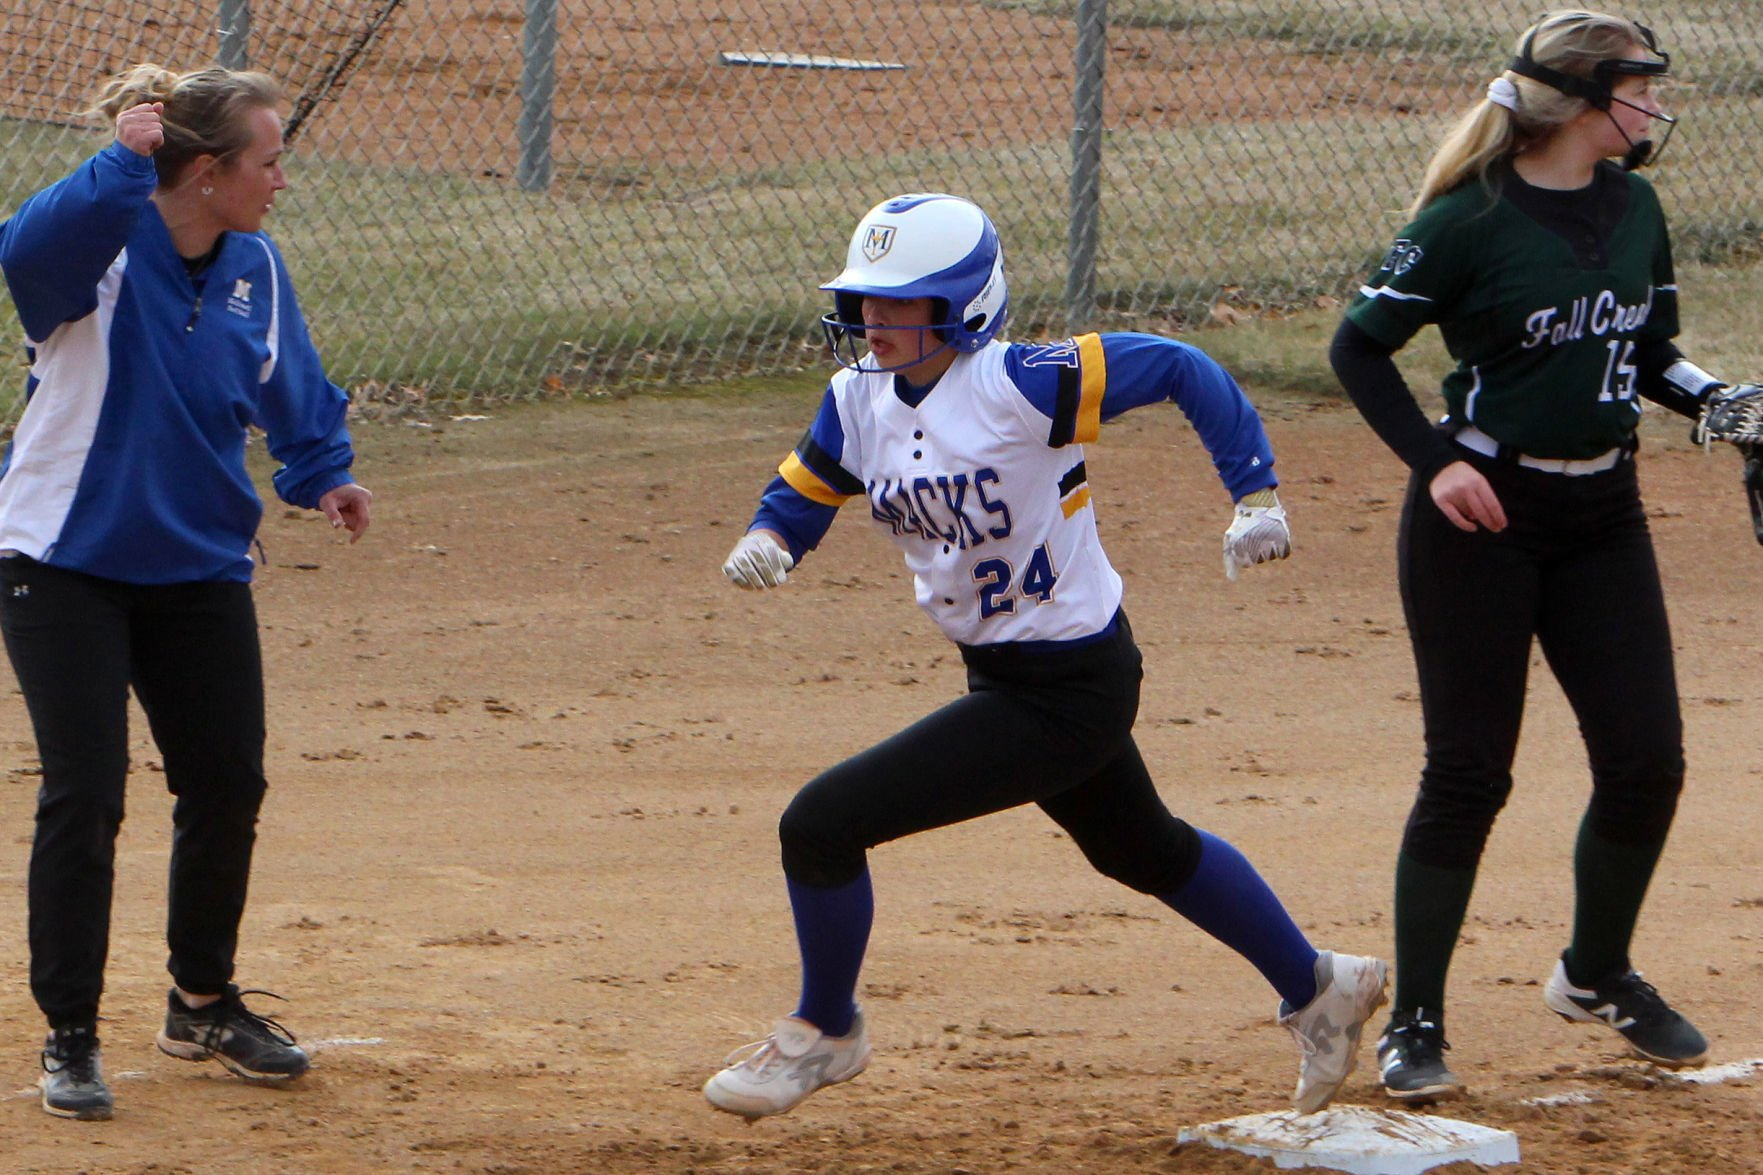 Bruins go on hit parade in Game 1 as Rachel Garcia cruises to victory